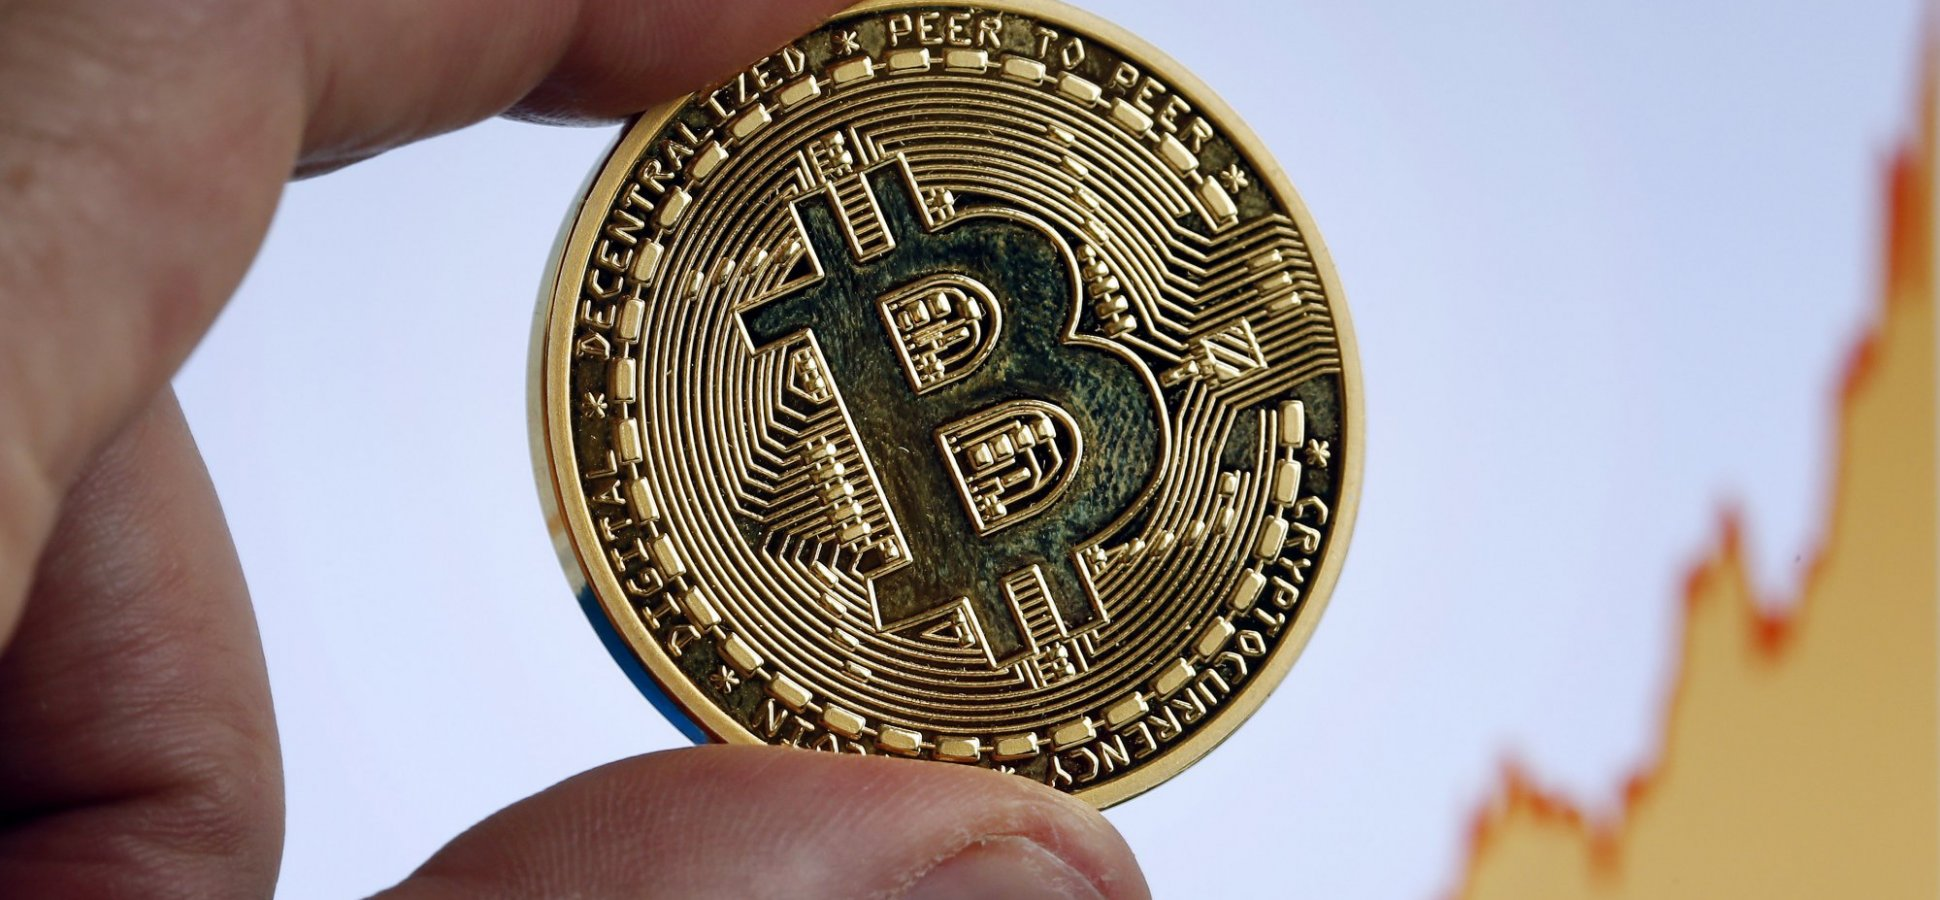 Bitcoin Millionaires Have a New Way to Cash Out Without Ever Selling a Single Bitcoin